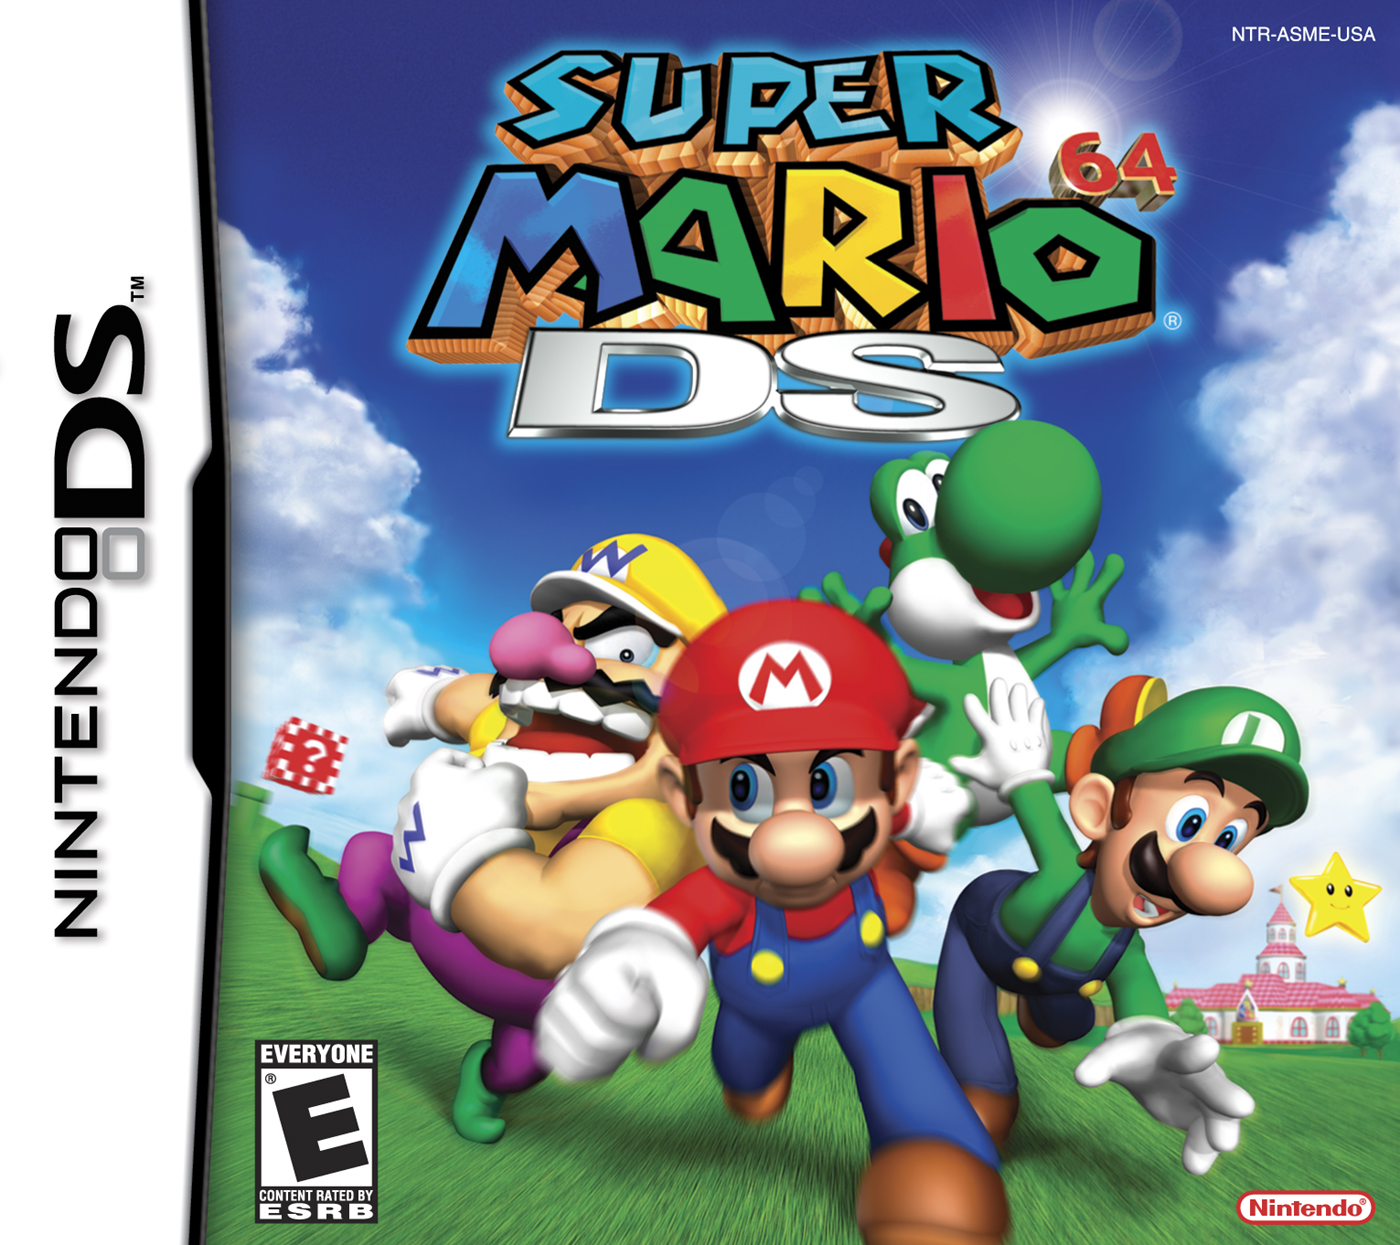 Super Mario 64 DS - The Nintendo Wiki - Wii, Nintendo DS, and all ...